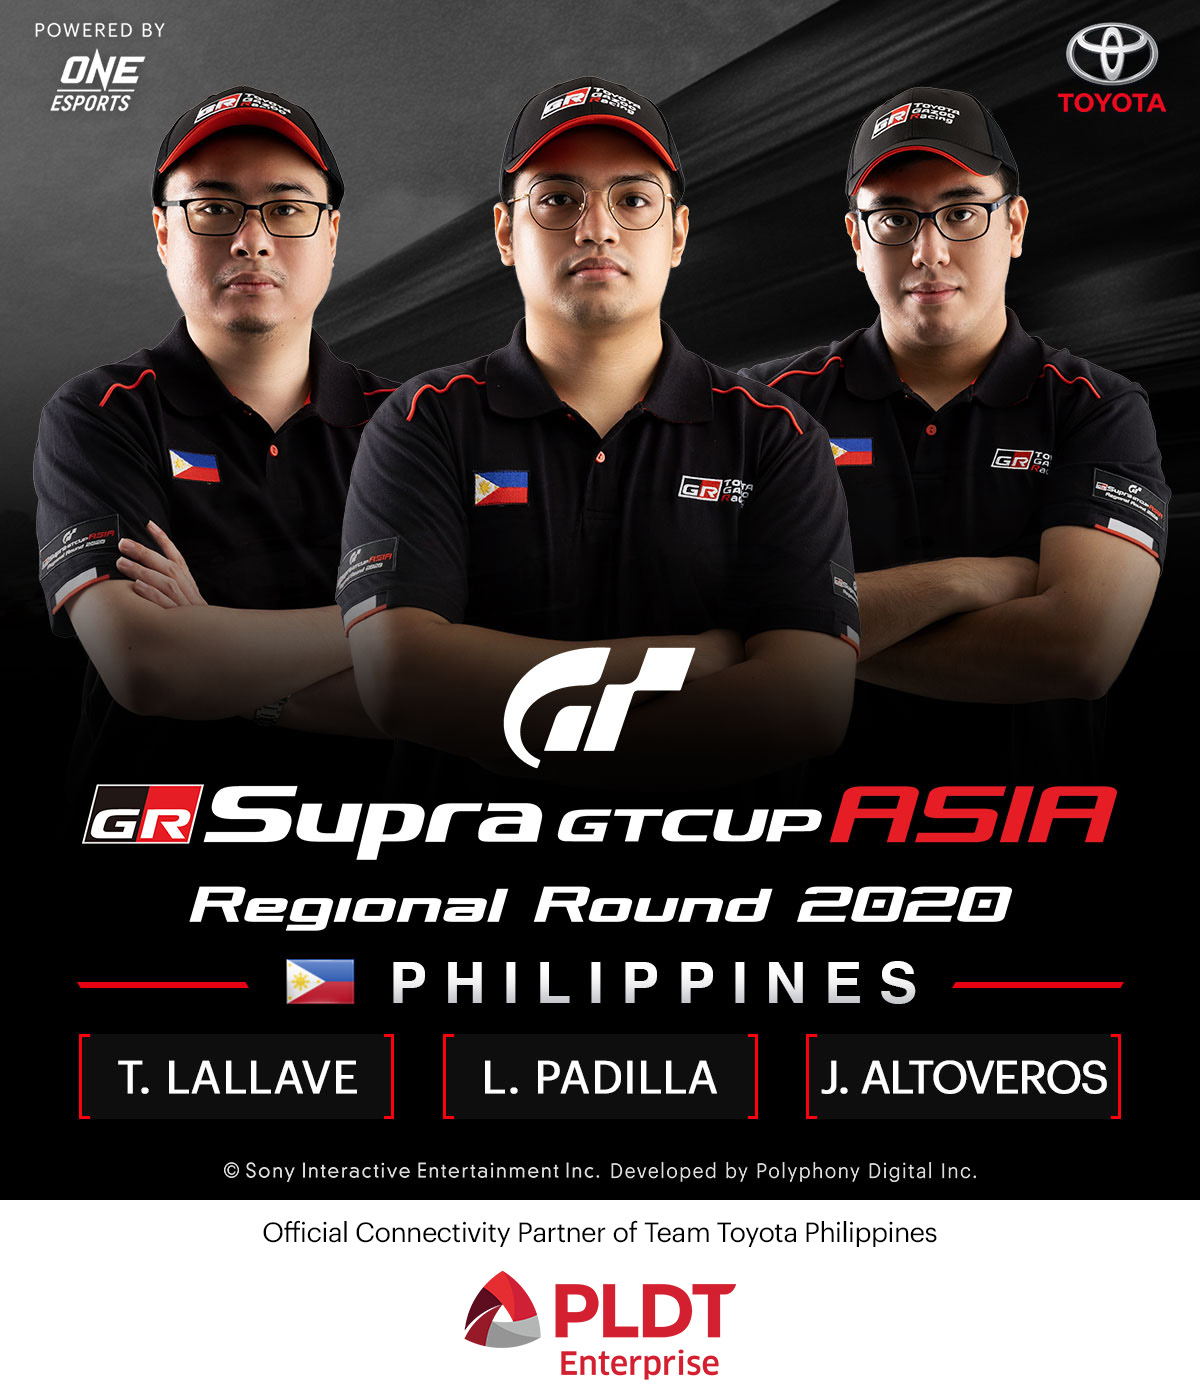 """Team Toyota Philippines aims for """"GR Supra GT Cup Asia 2020"""" Regional Championship"""